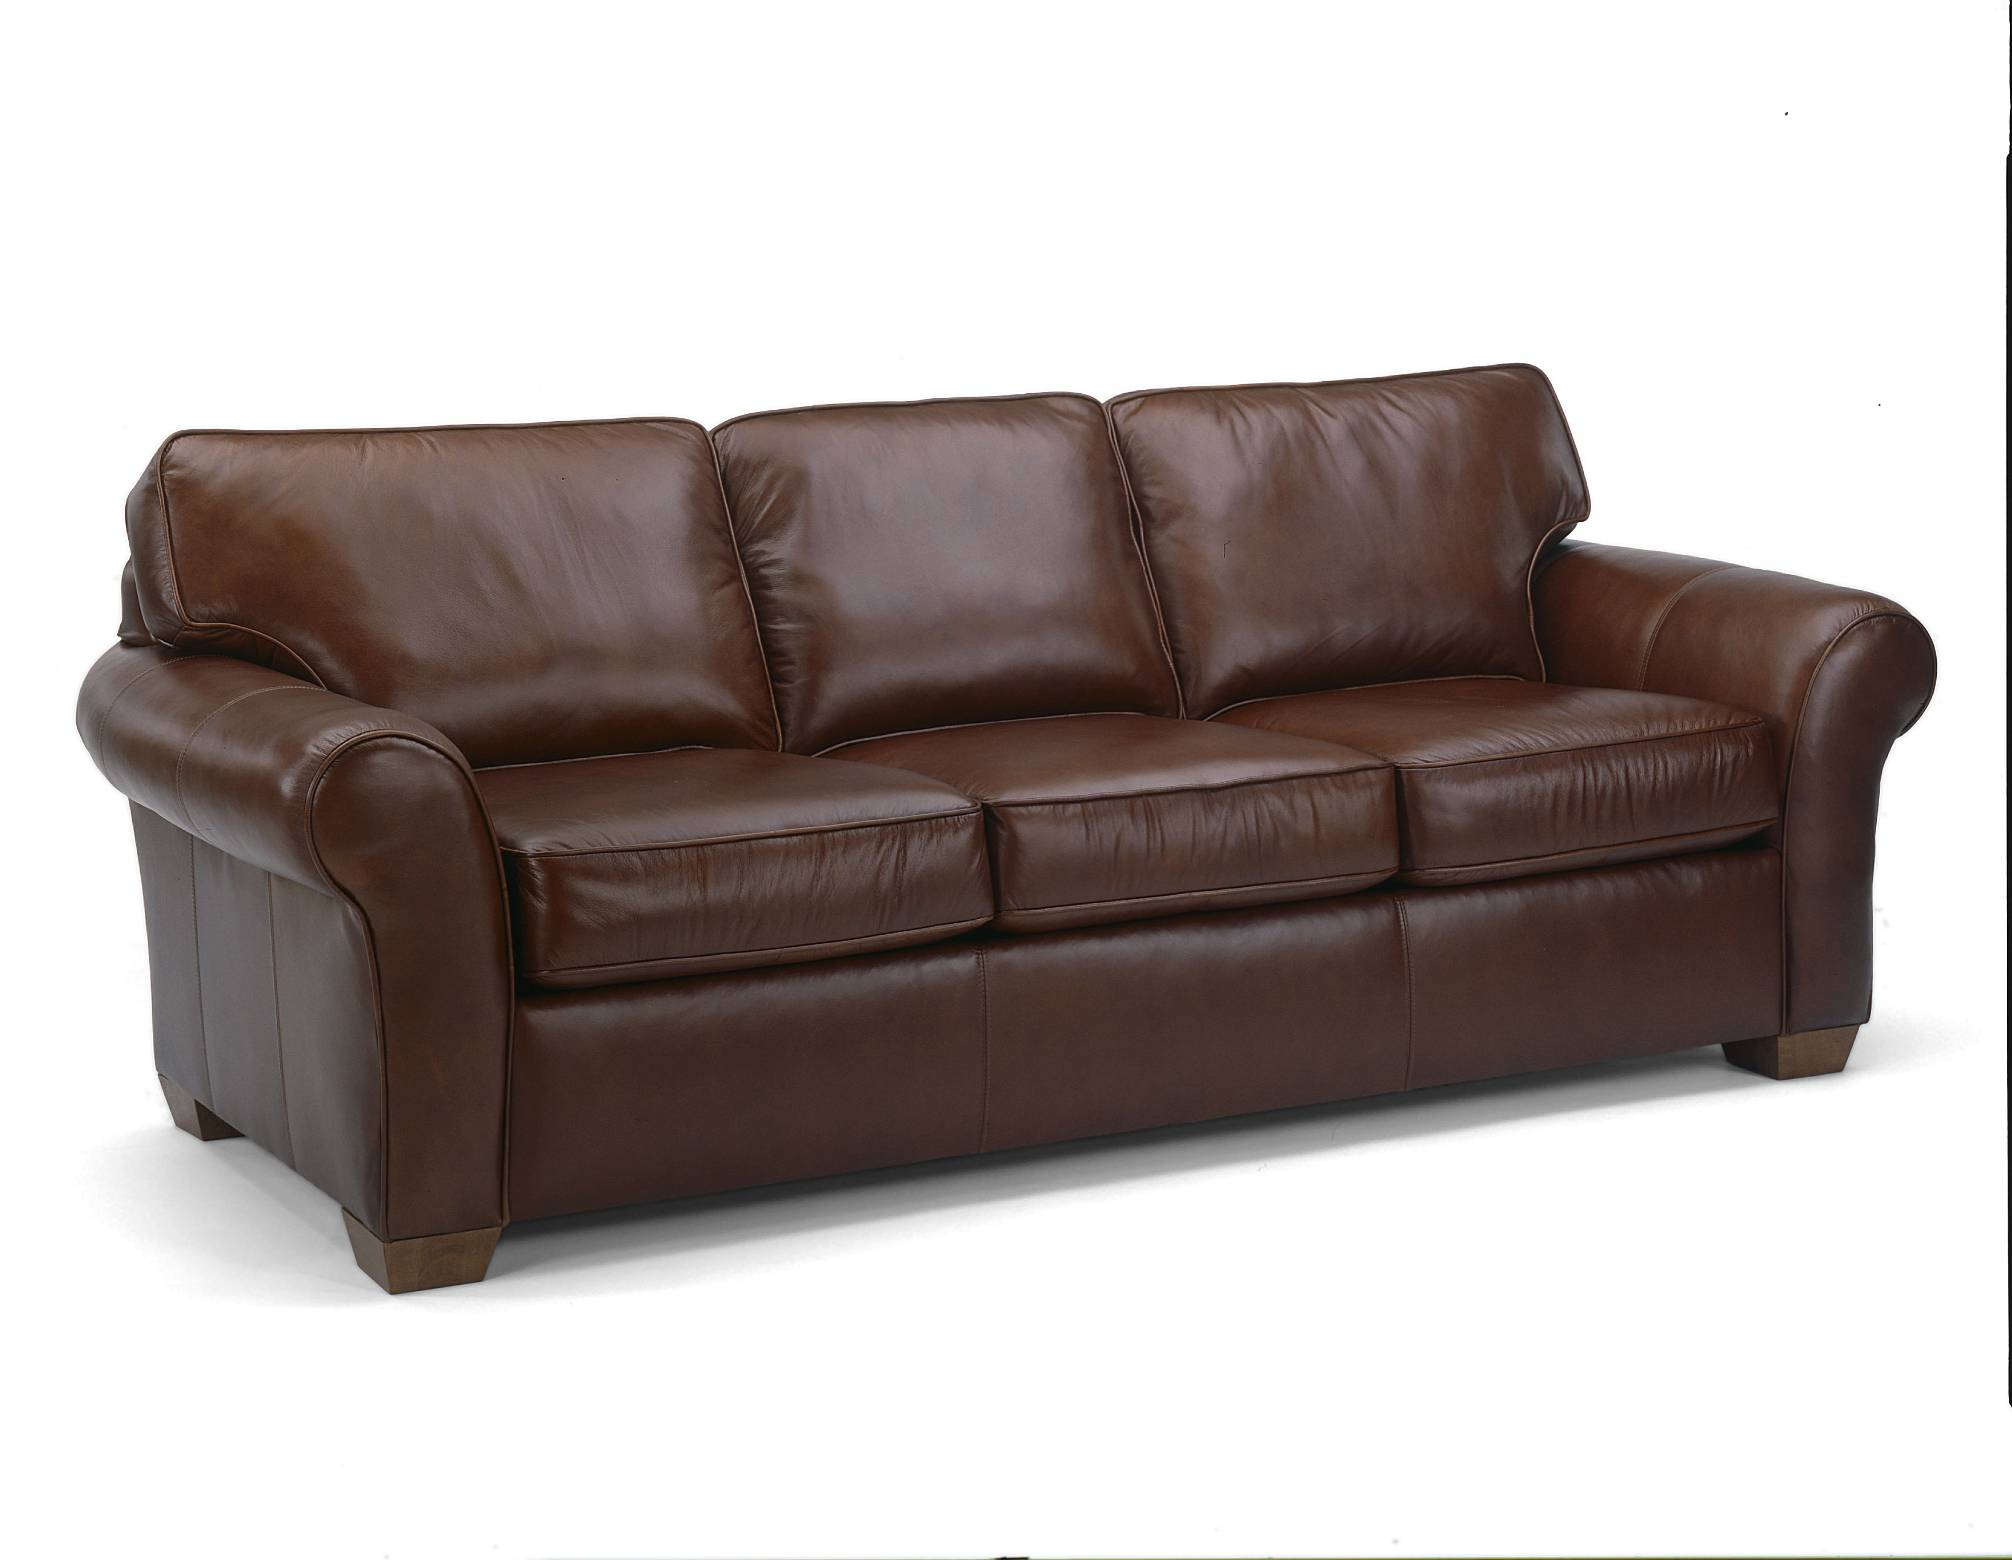 Jasen s Furniture your Flexsteel Dealers in Michigan